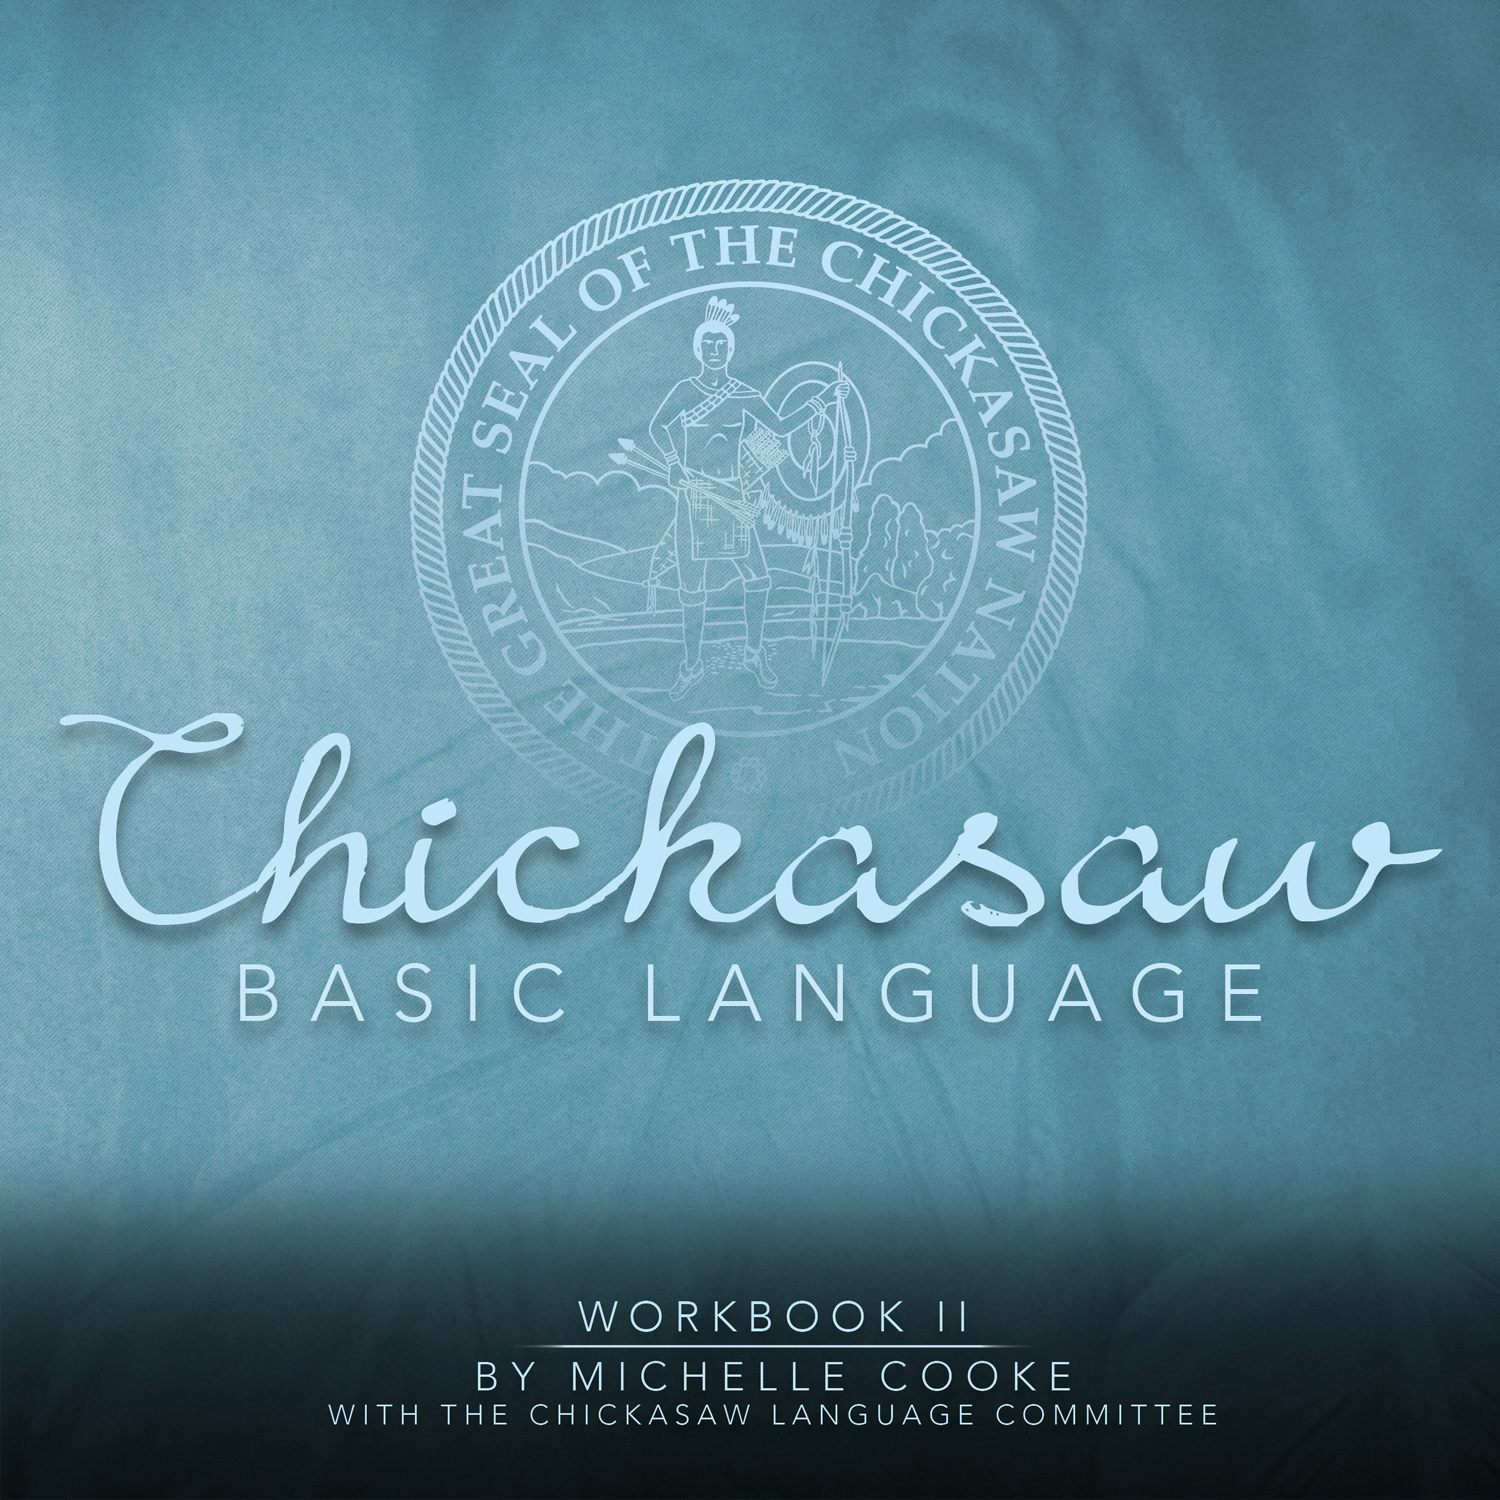 Chickasaw Basic Language Workbook II